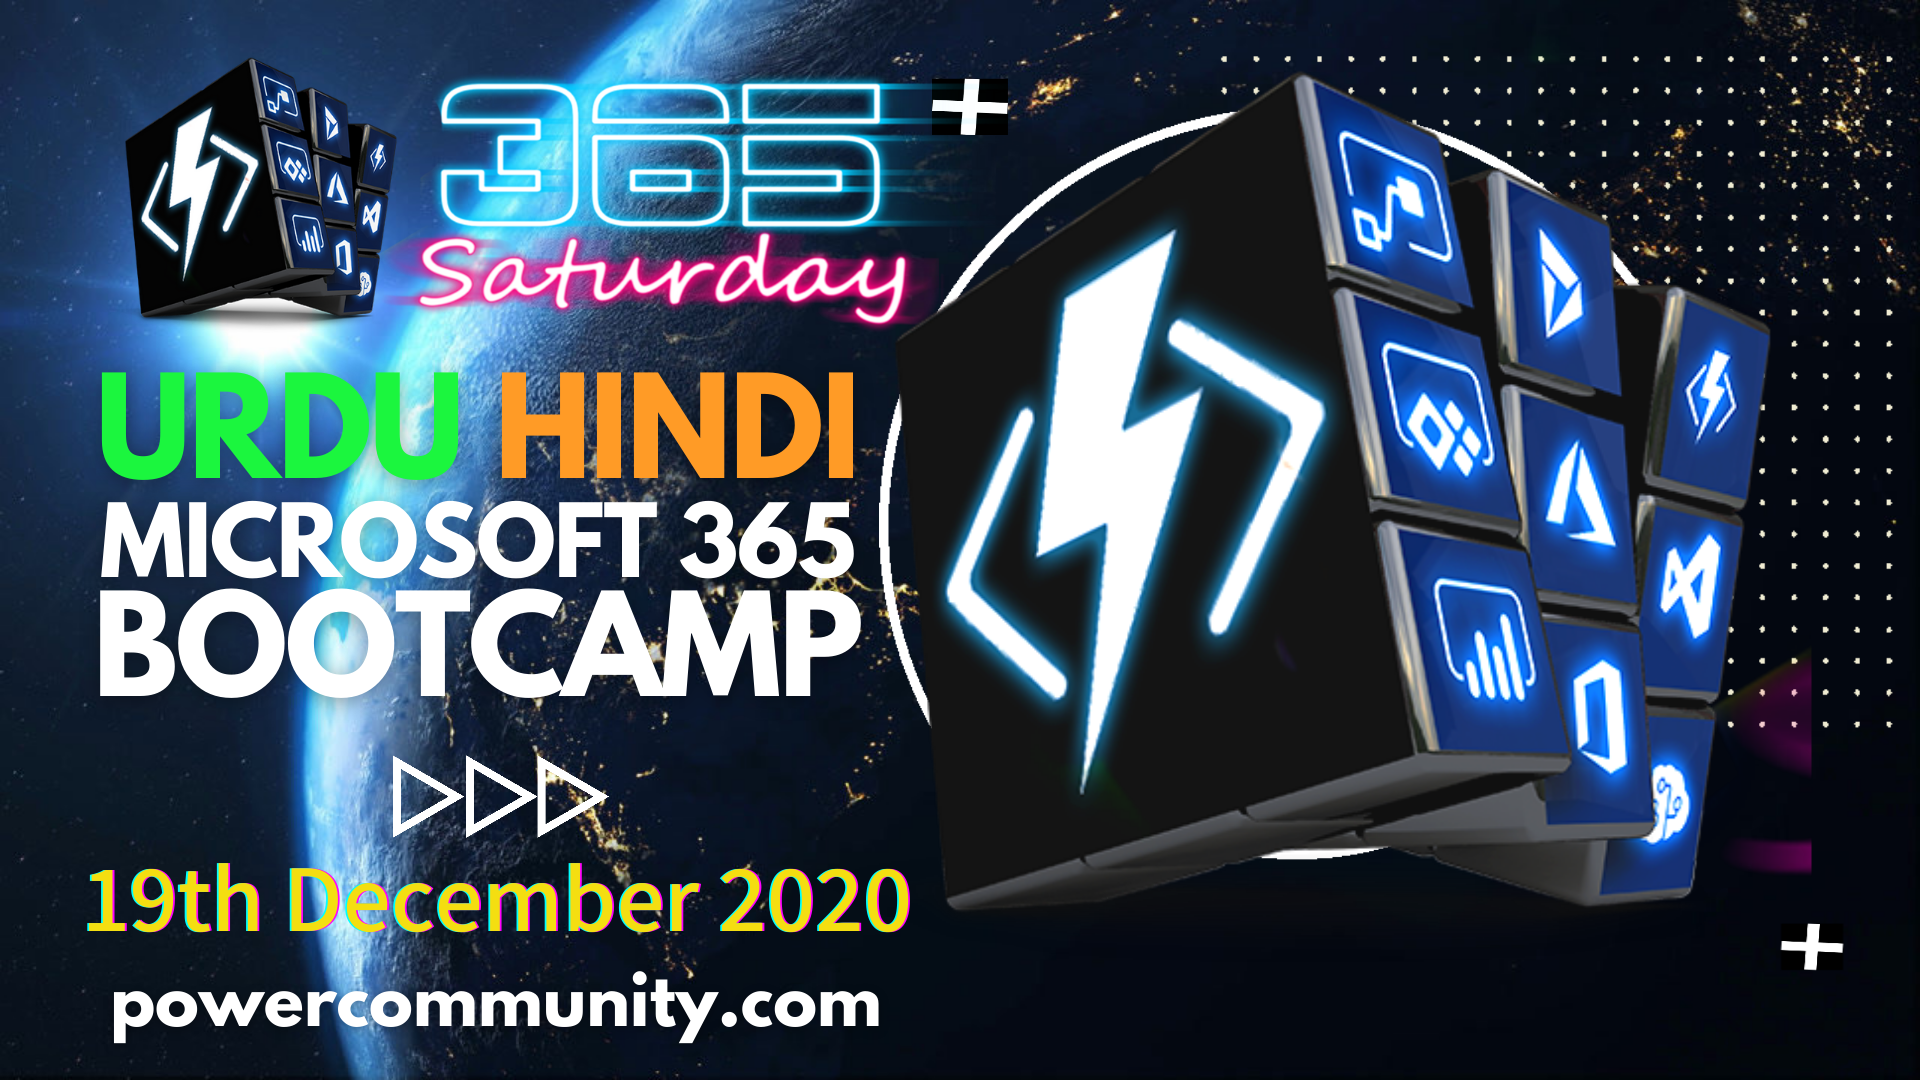 Urdu Hindi Microsoft 365 Bootcamp